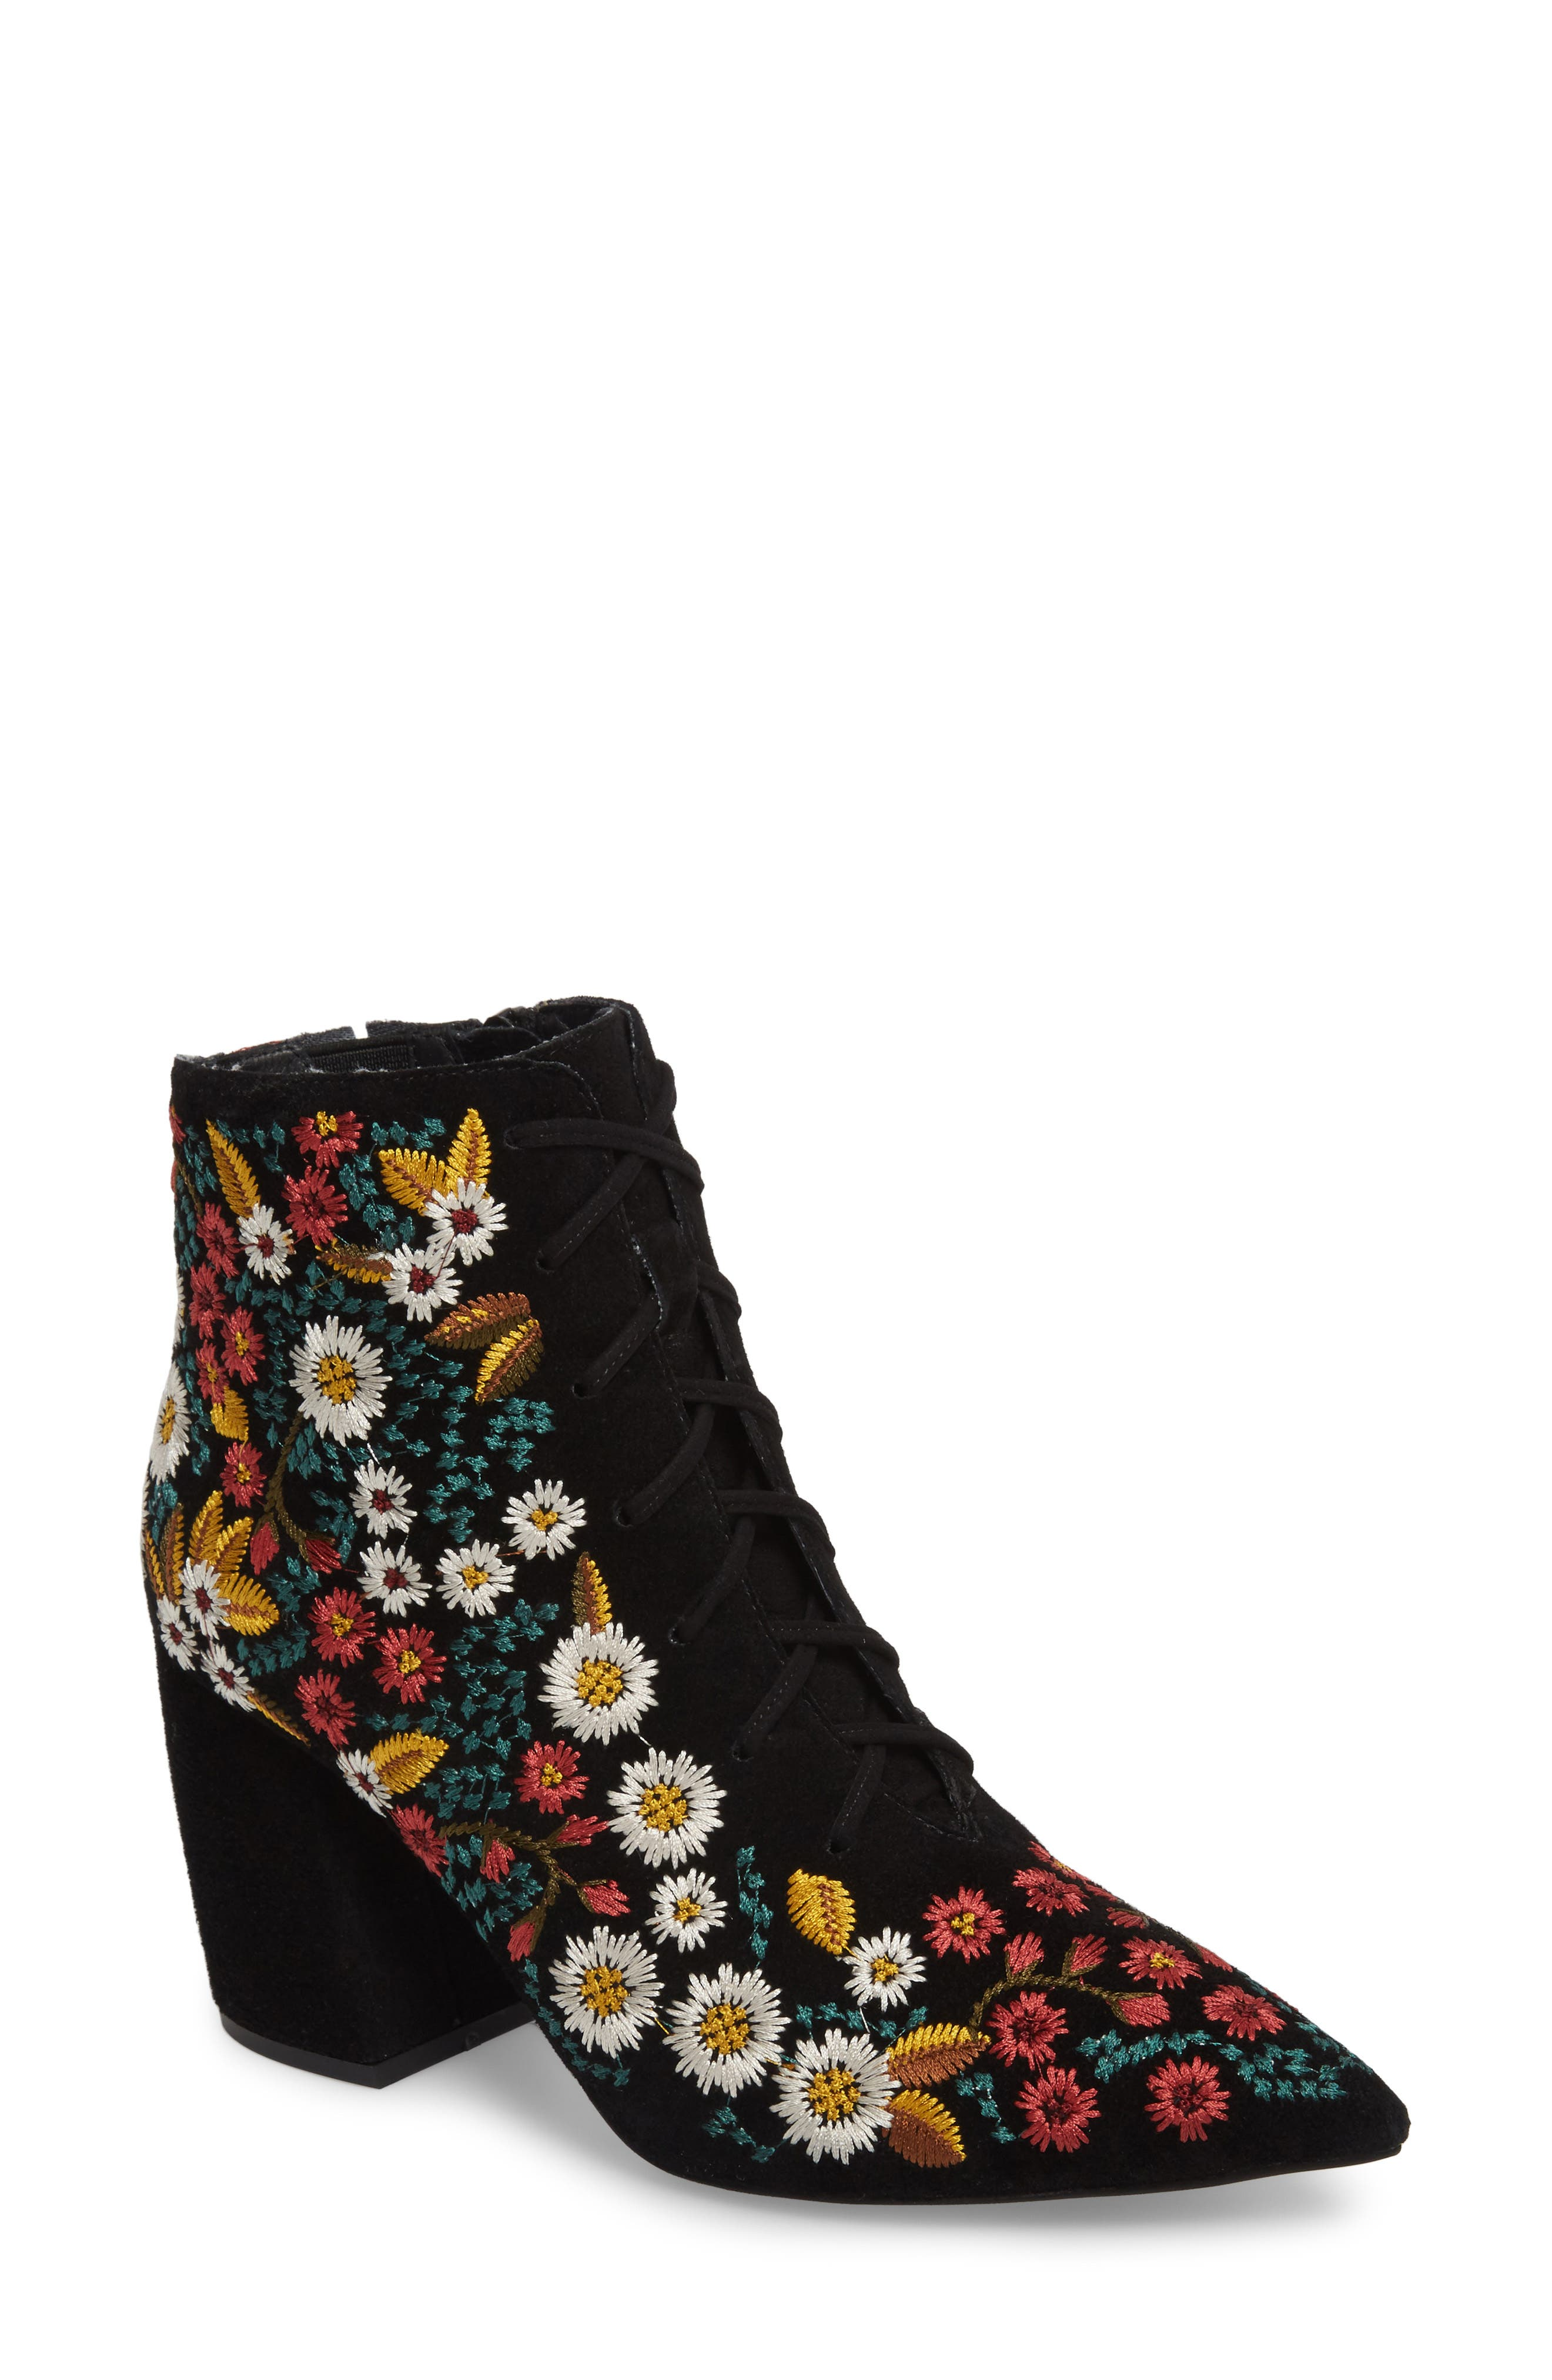 Main Image - Jeffrey Campbell Finito Lace-Up Bootie (Women)